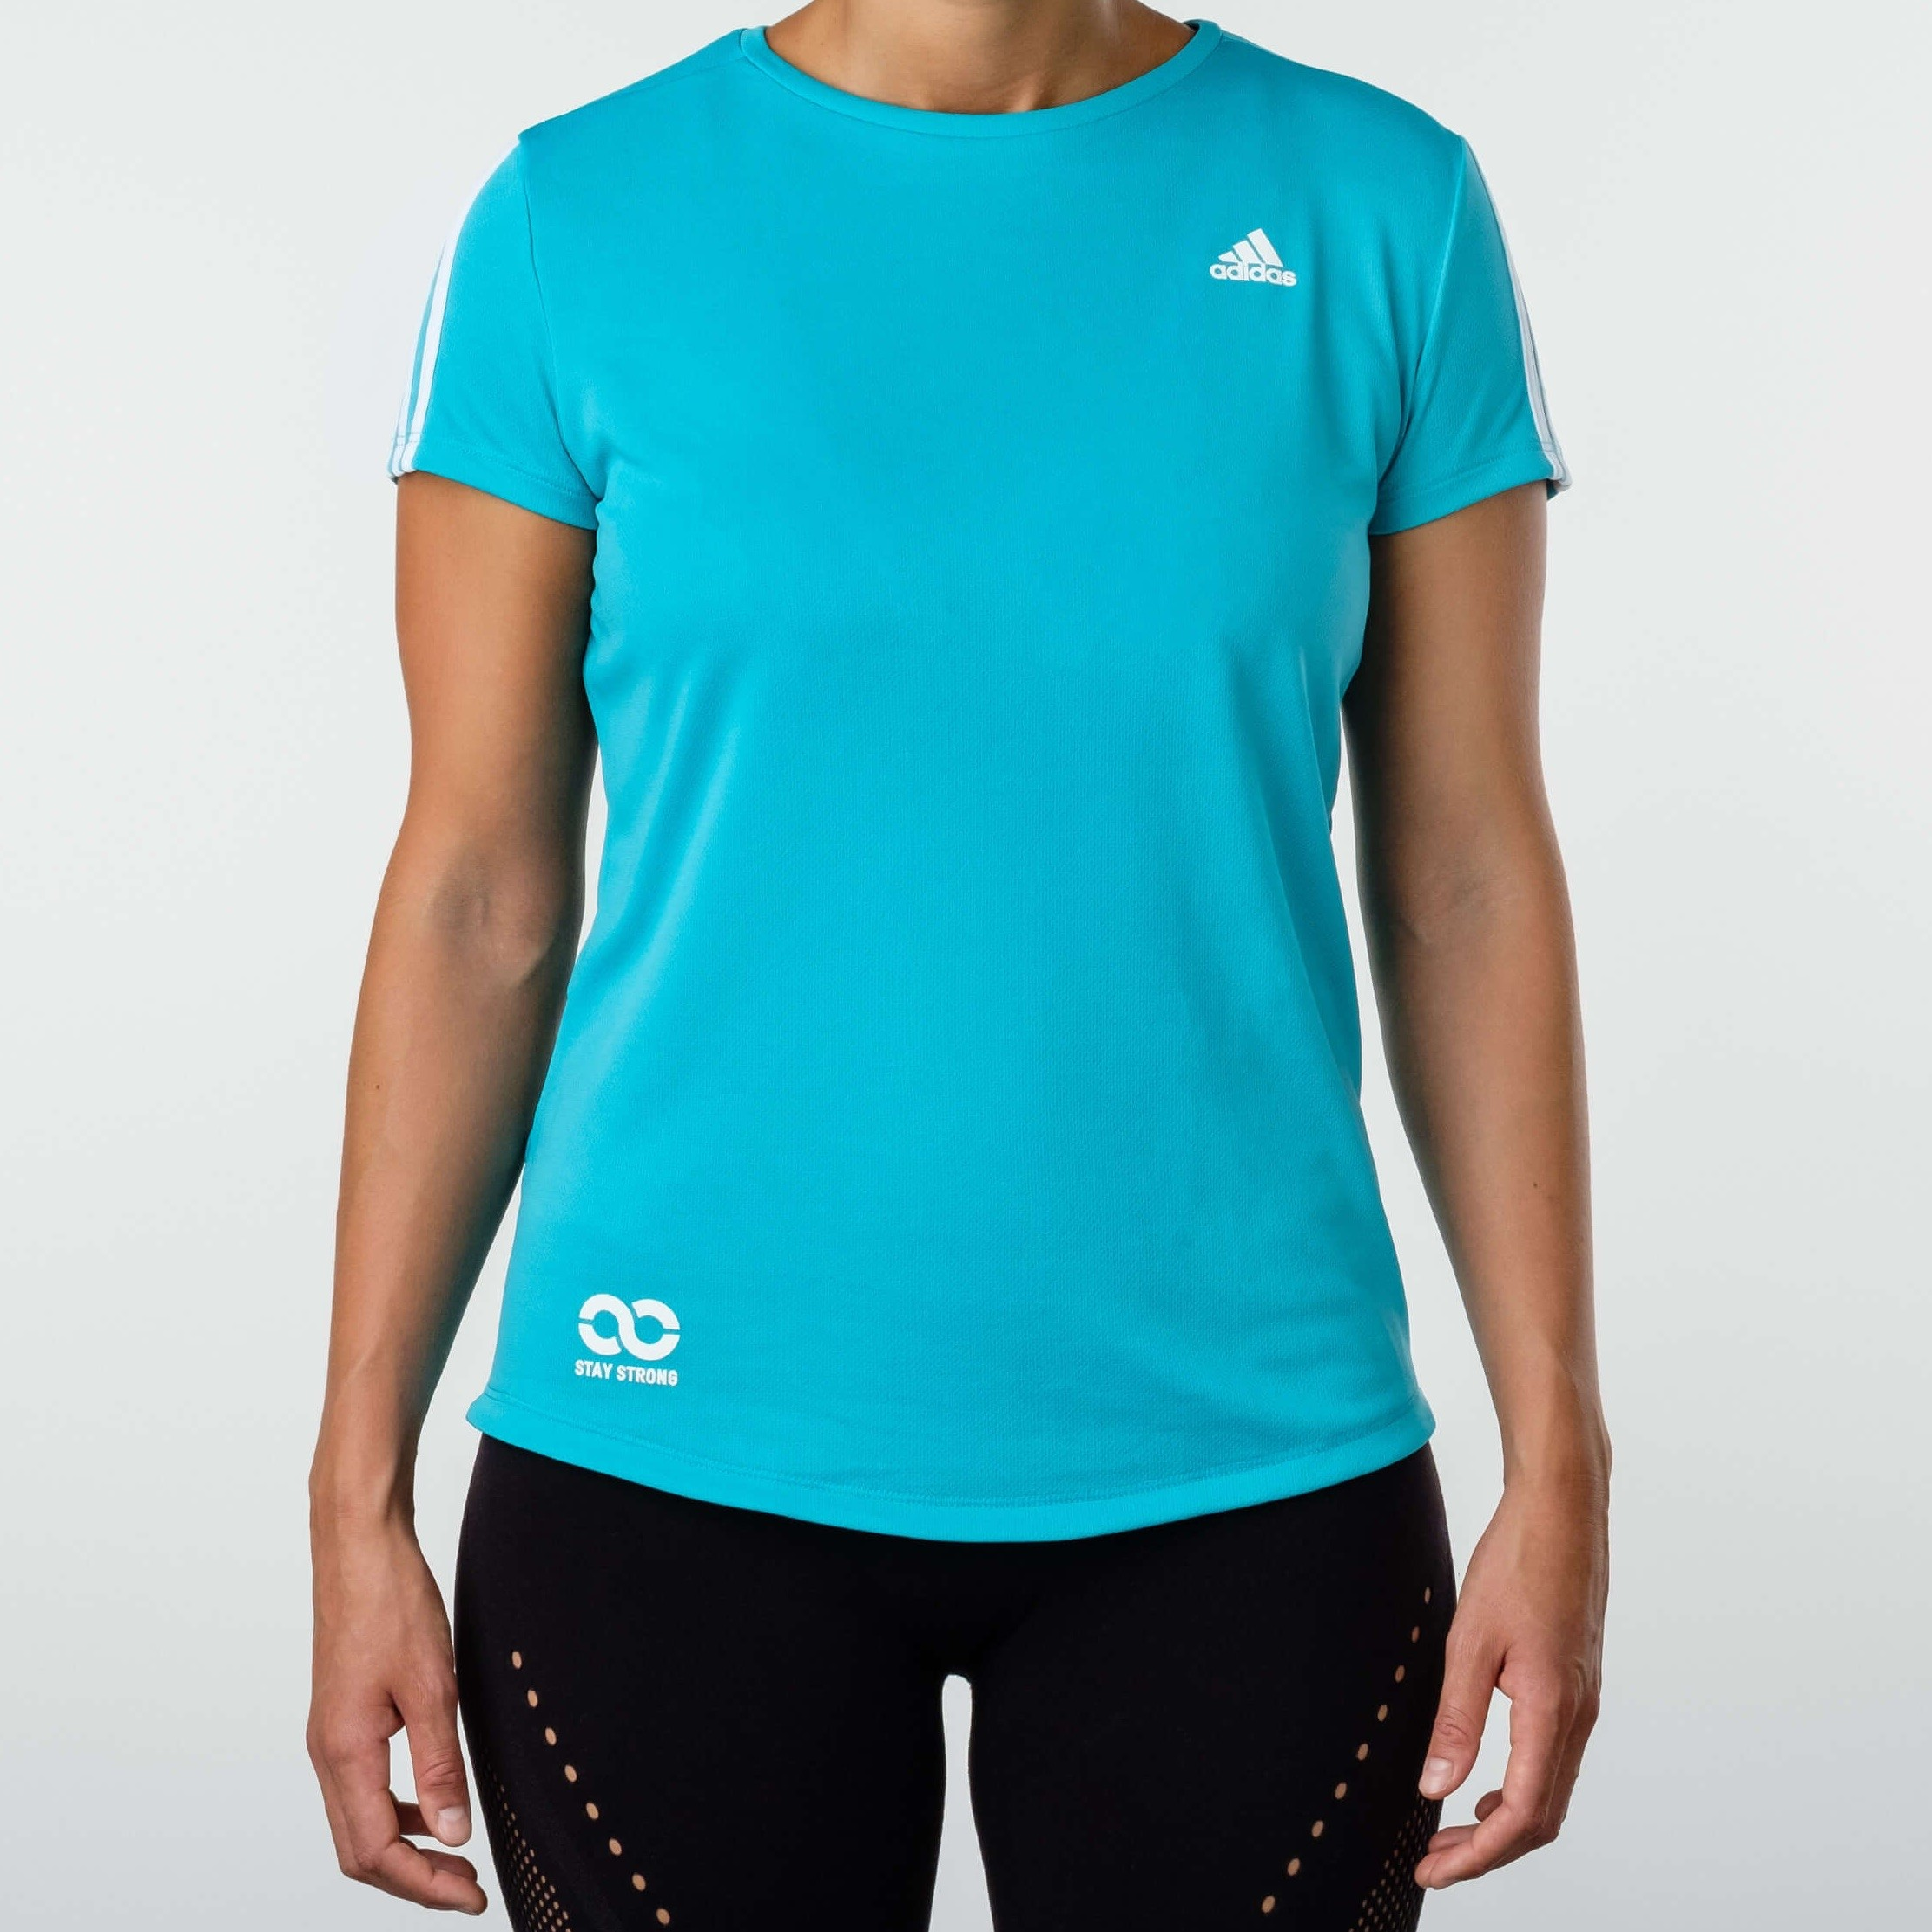 Adidas Original Bootcamp Shirt (Frauen)